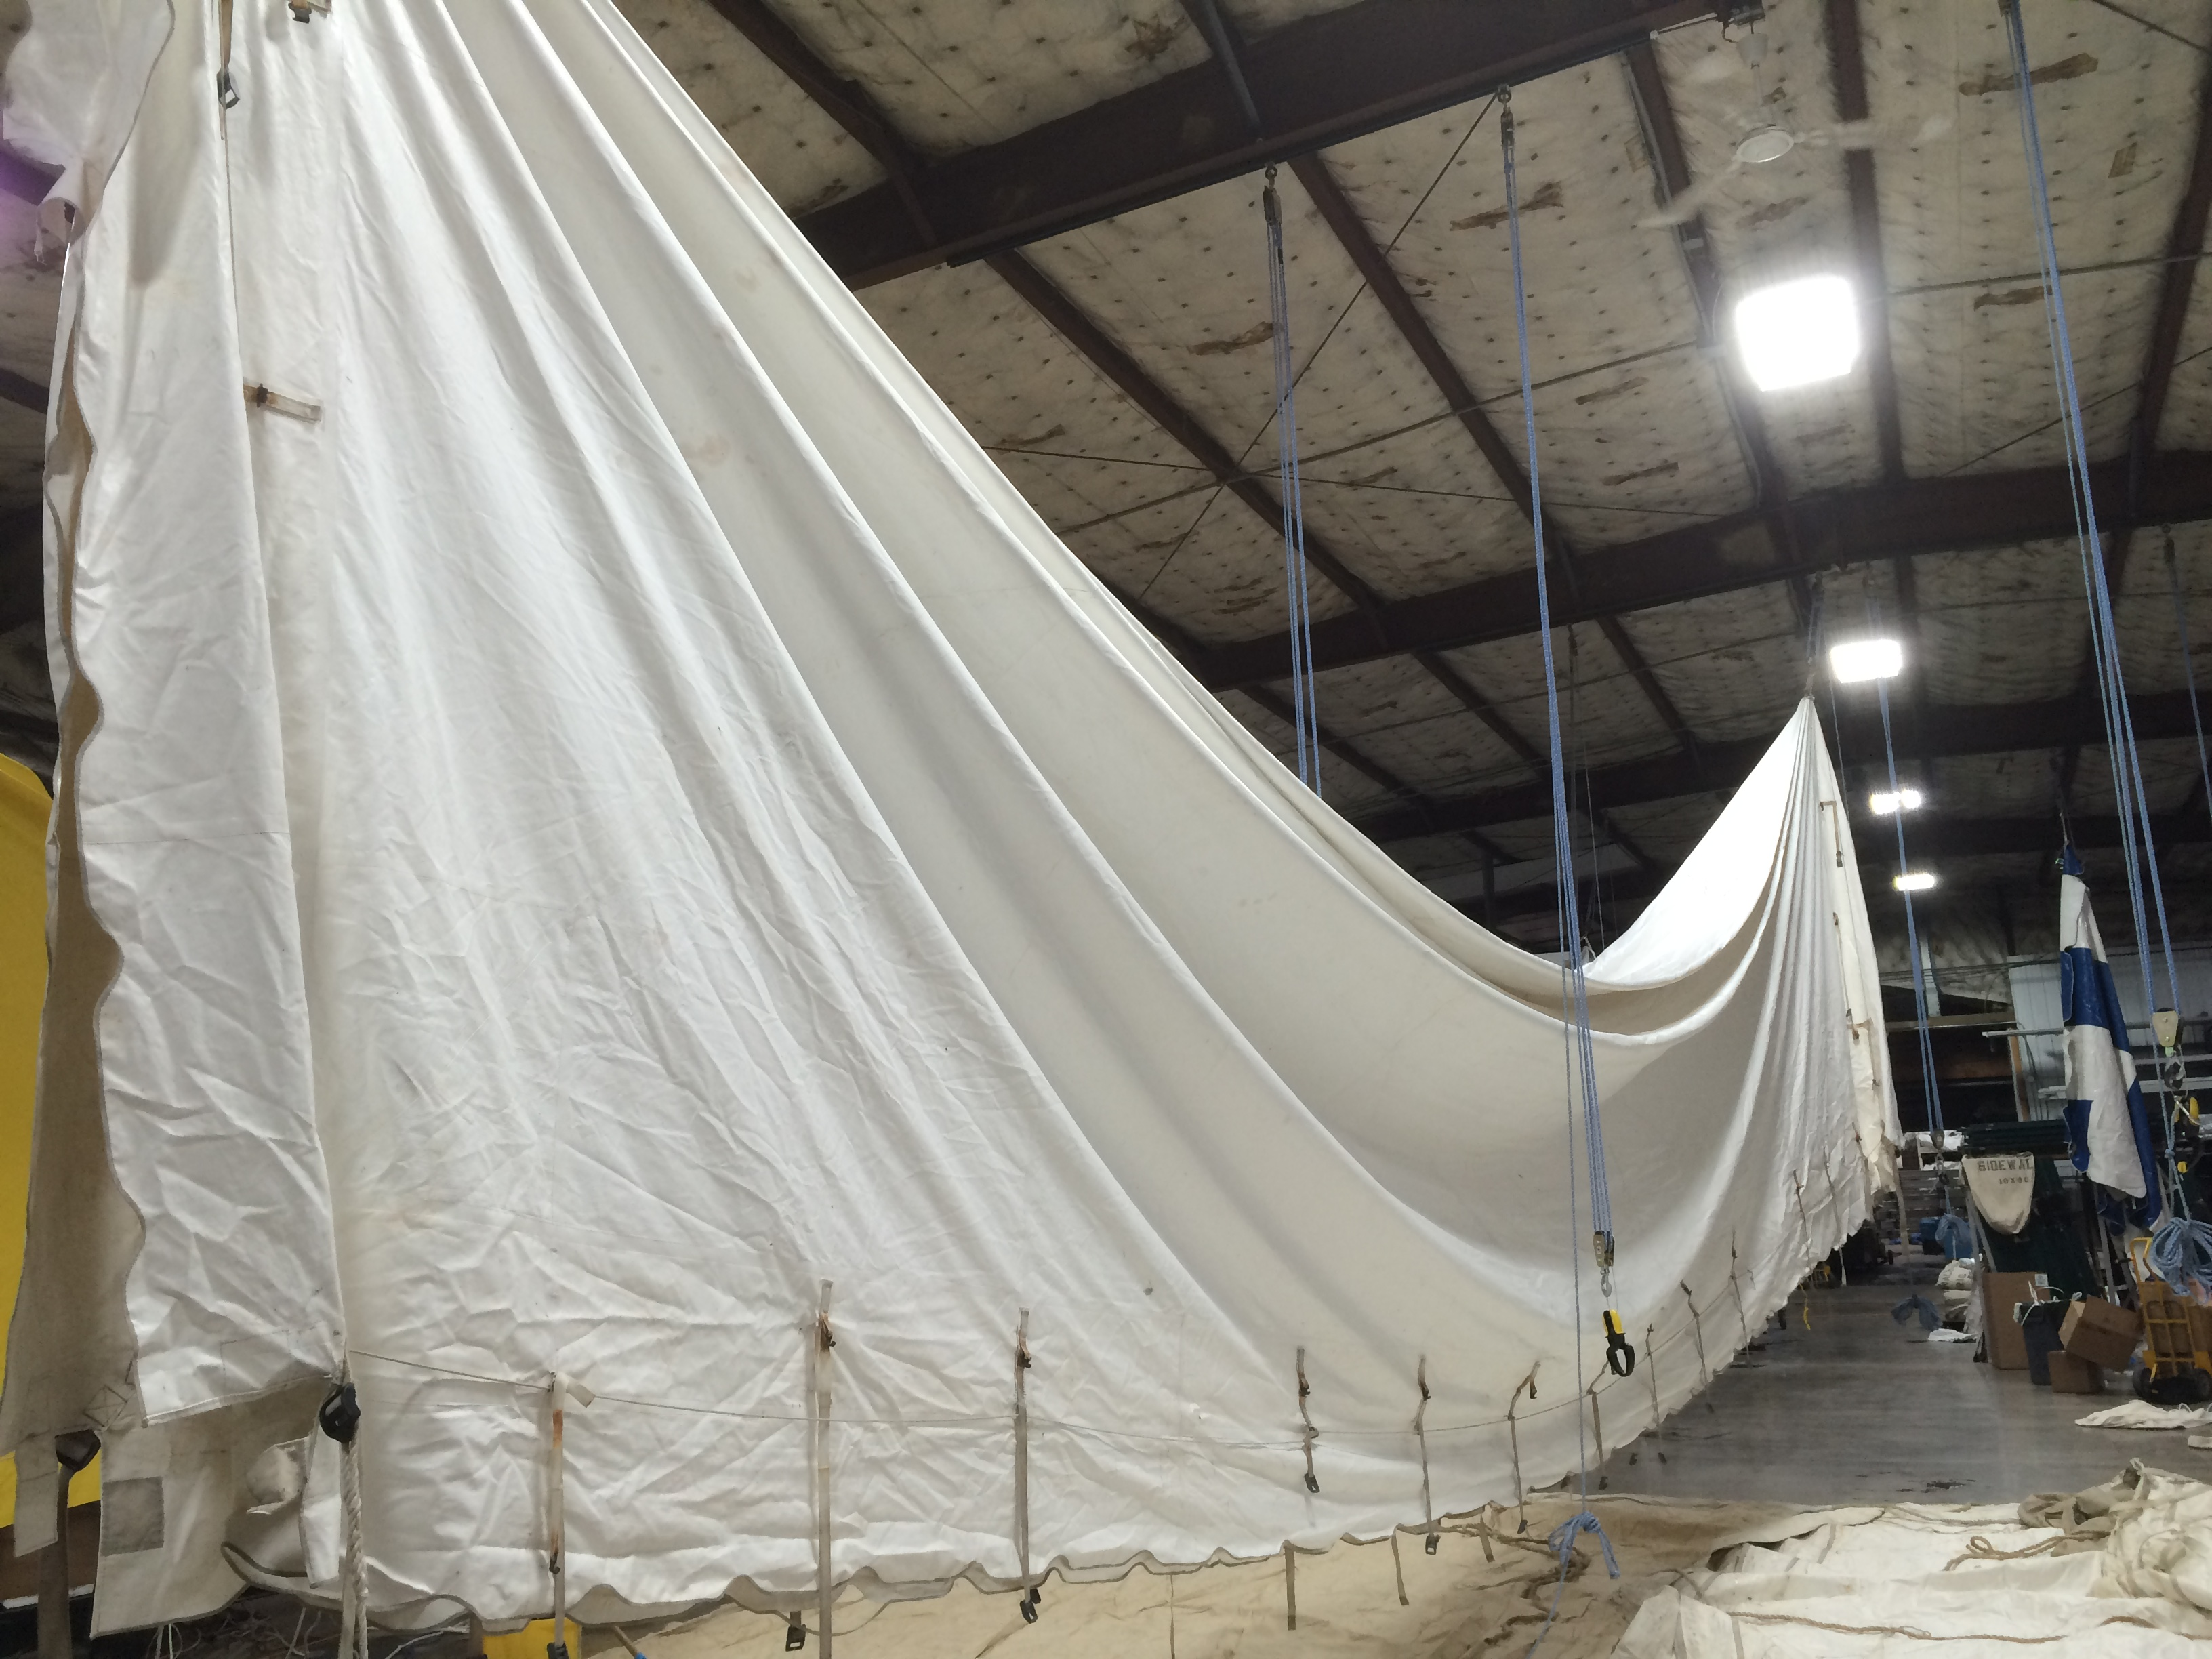 ... frame tent top only 800u2013Some mildew stainingu2013Frame available 02 & 20u0027x40u0027-934 frame tent top only 800-Some mildew staining-Frame ...